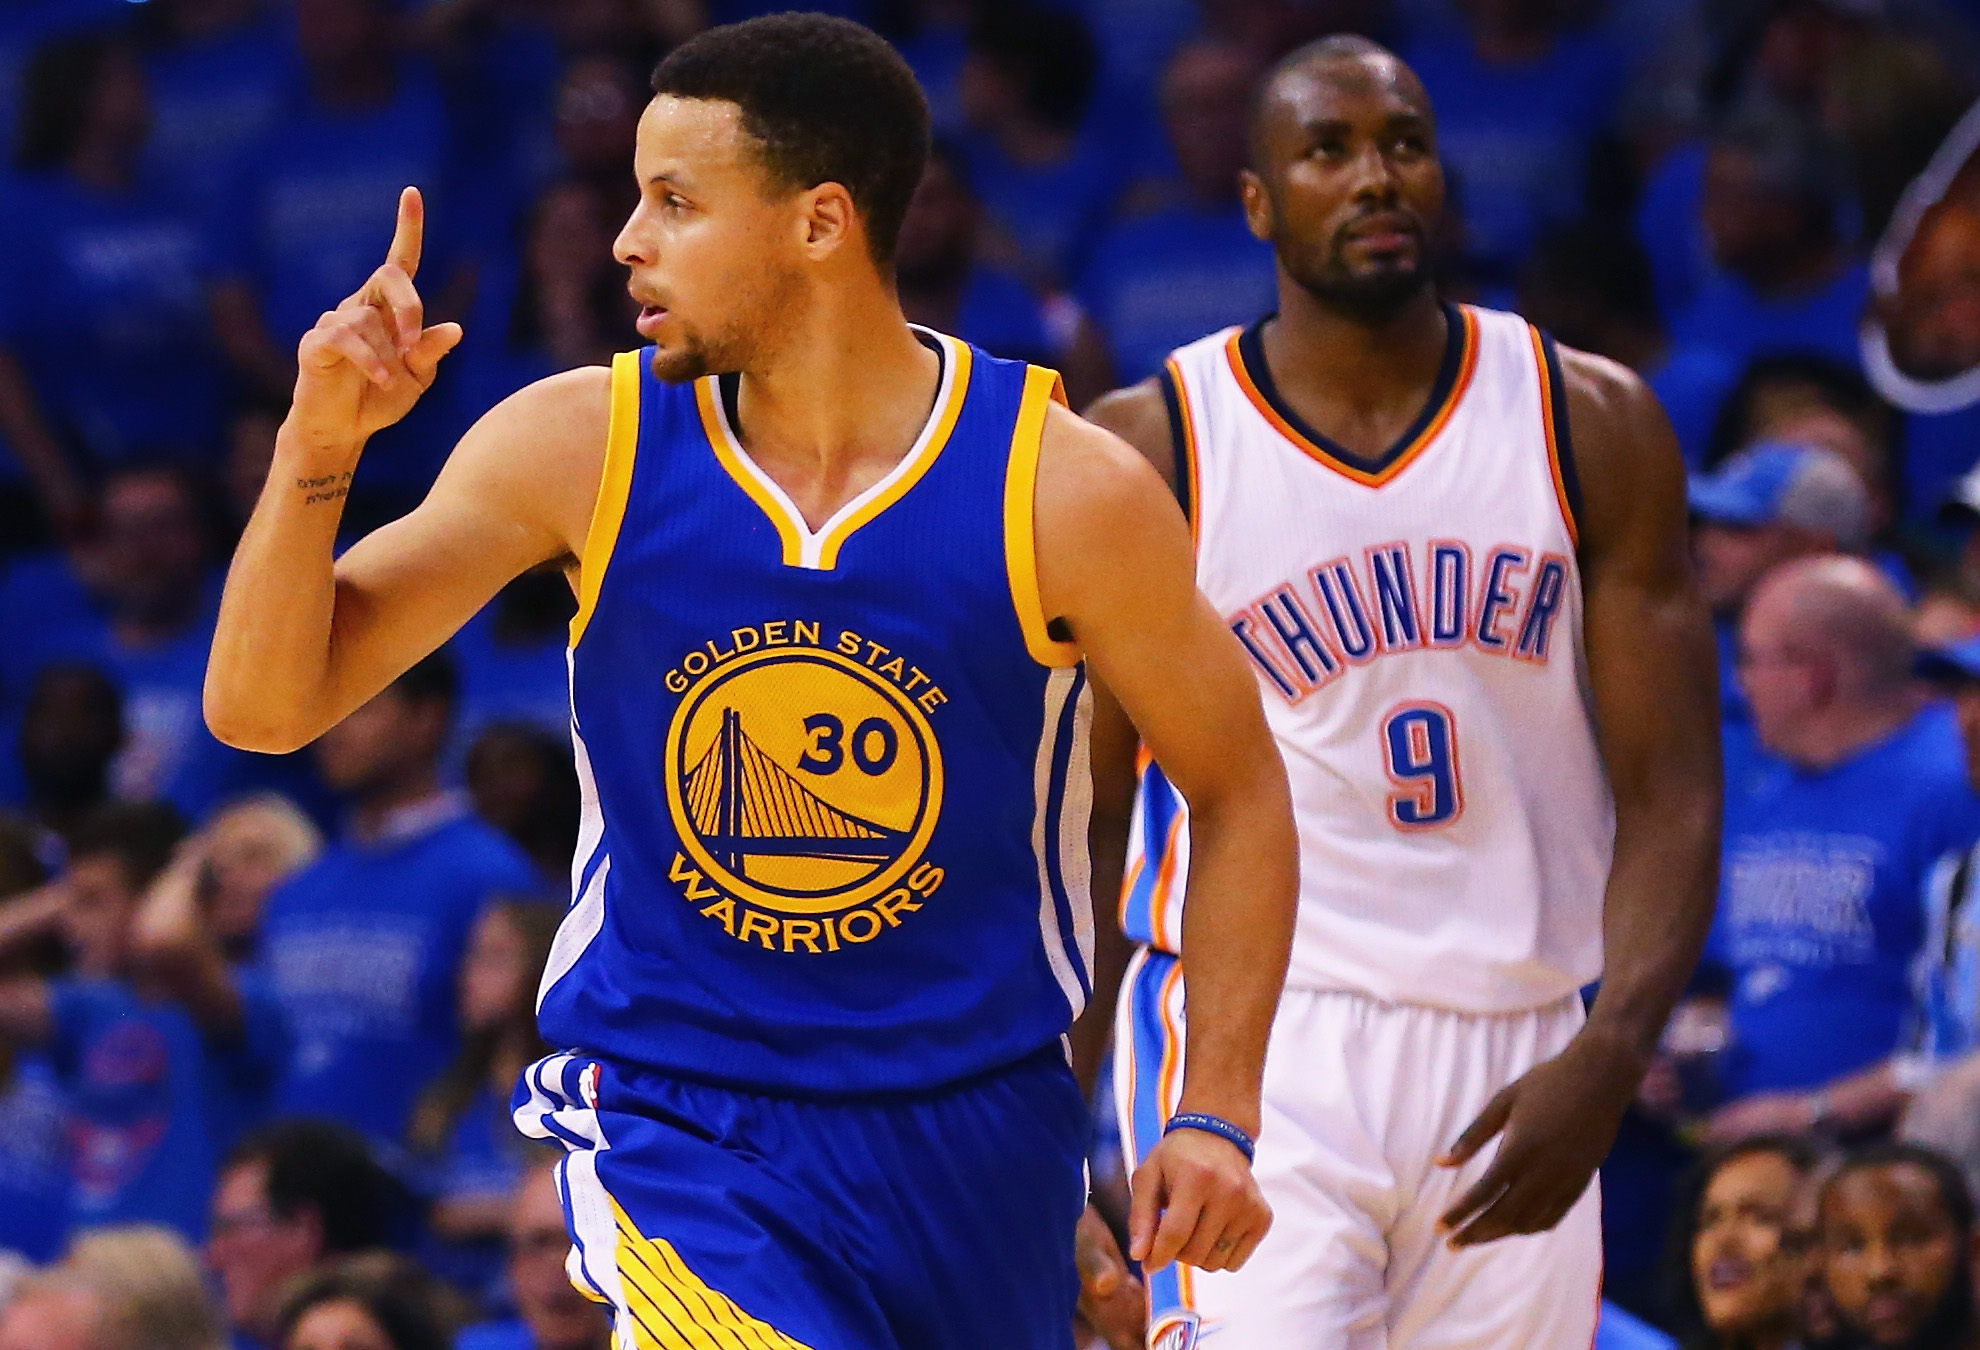 Cavaliers vs warriors game 7 predictions - Warriors Vs Thunder Game 7 Prediction Betting Odds With Trip To 2016 Nba Finals On Line